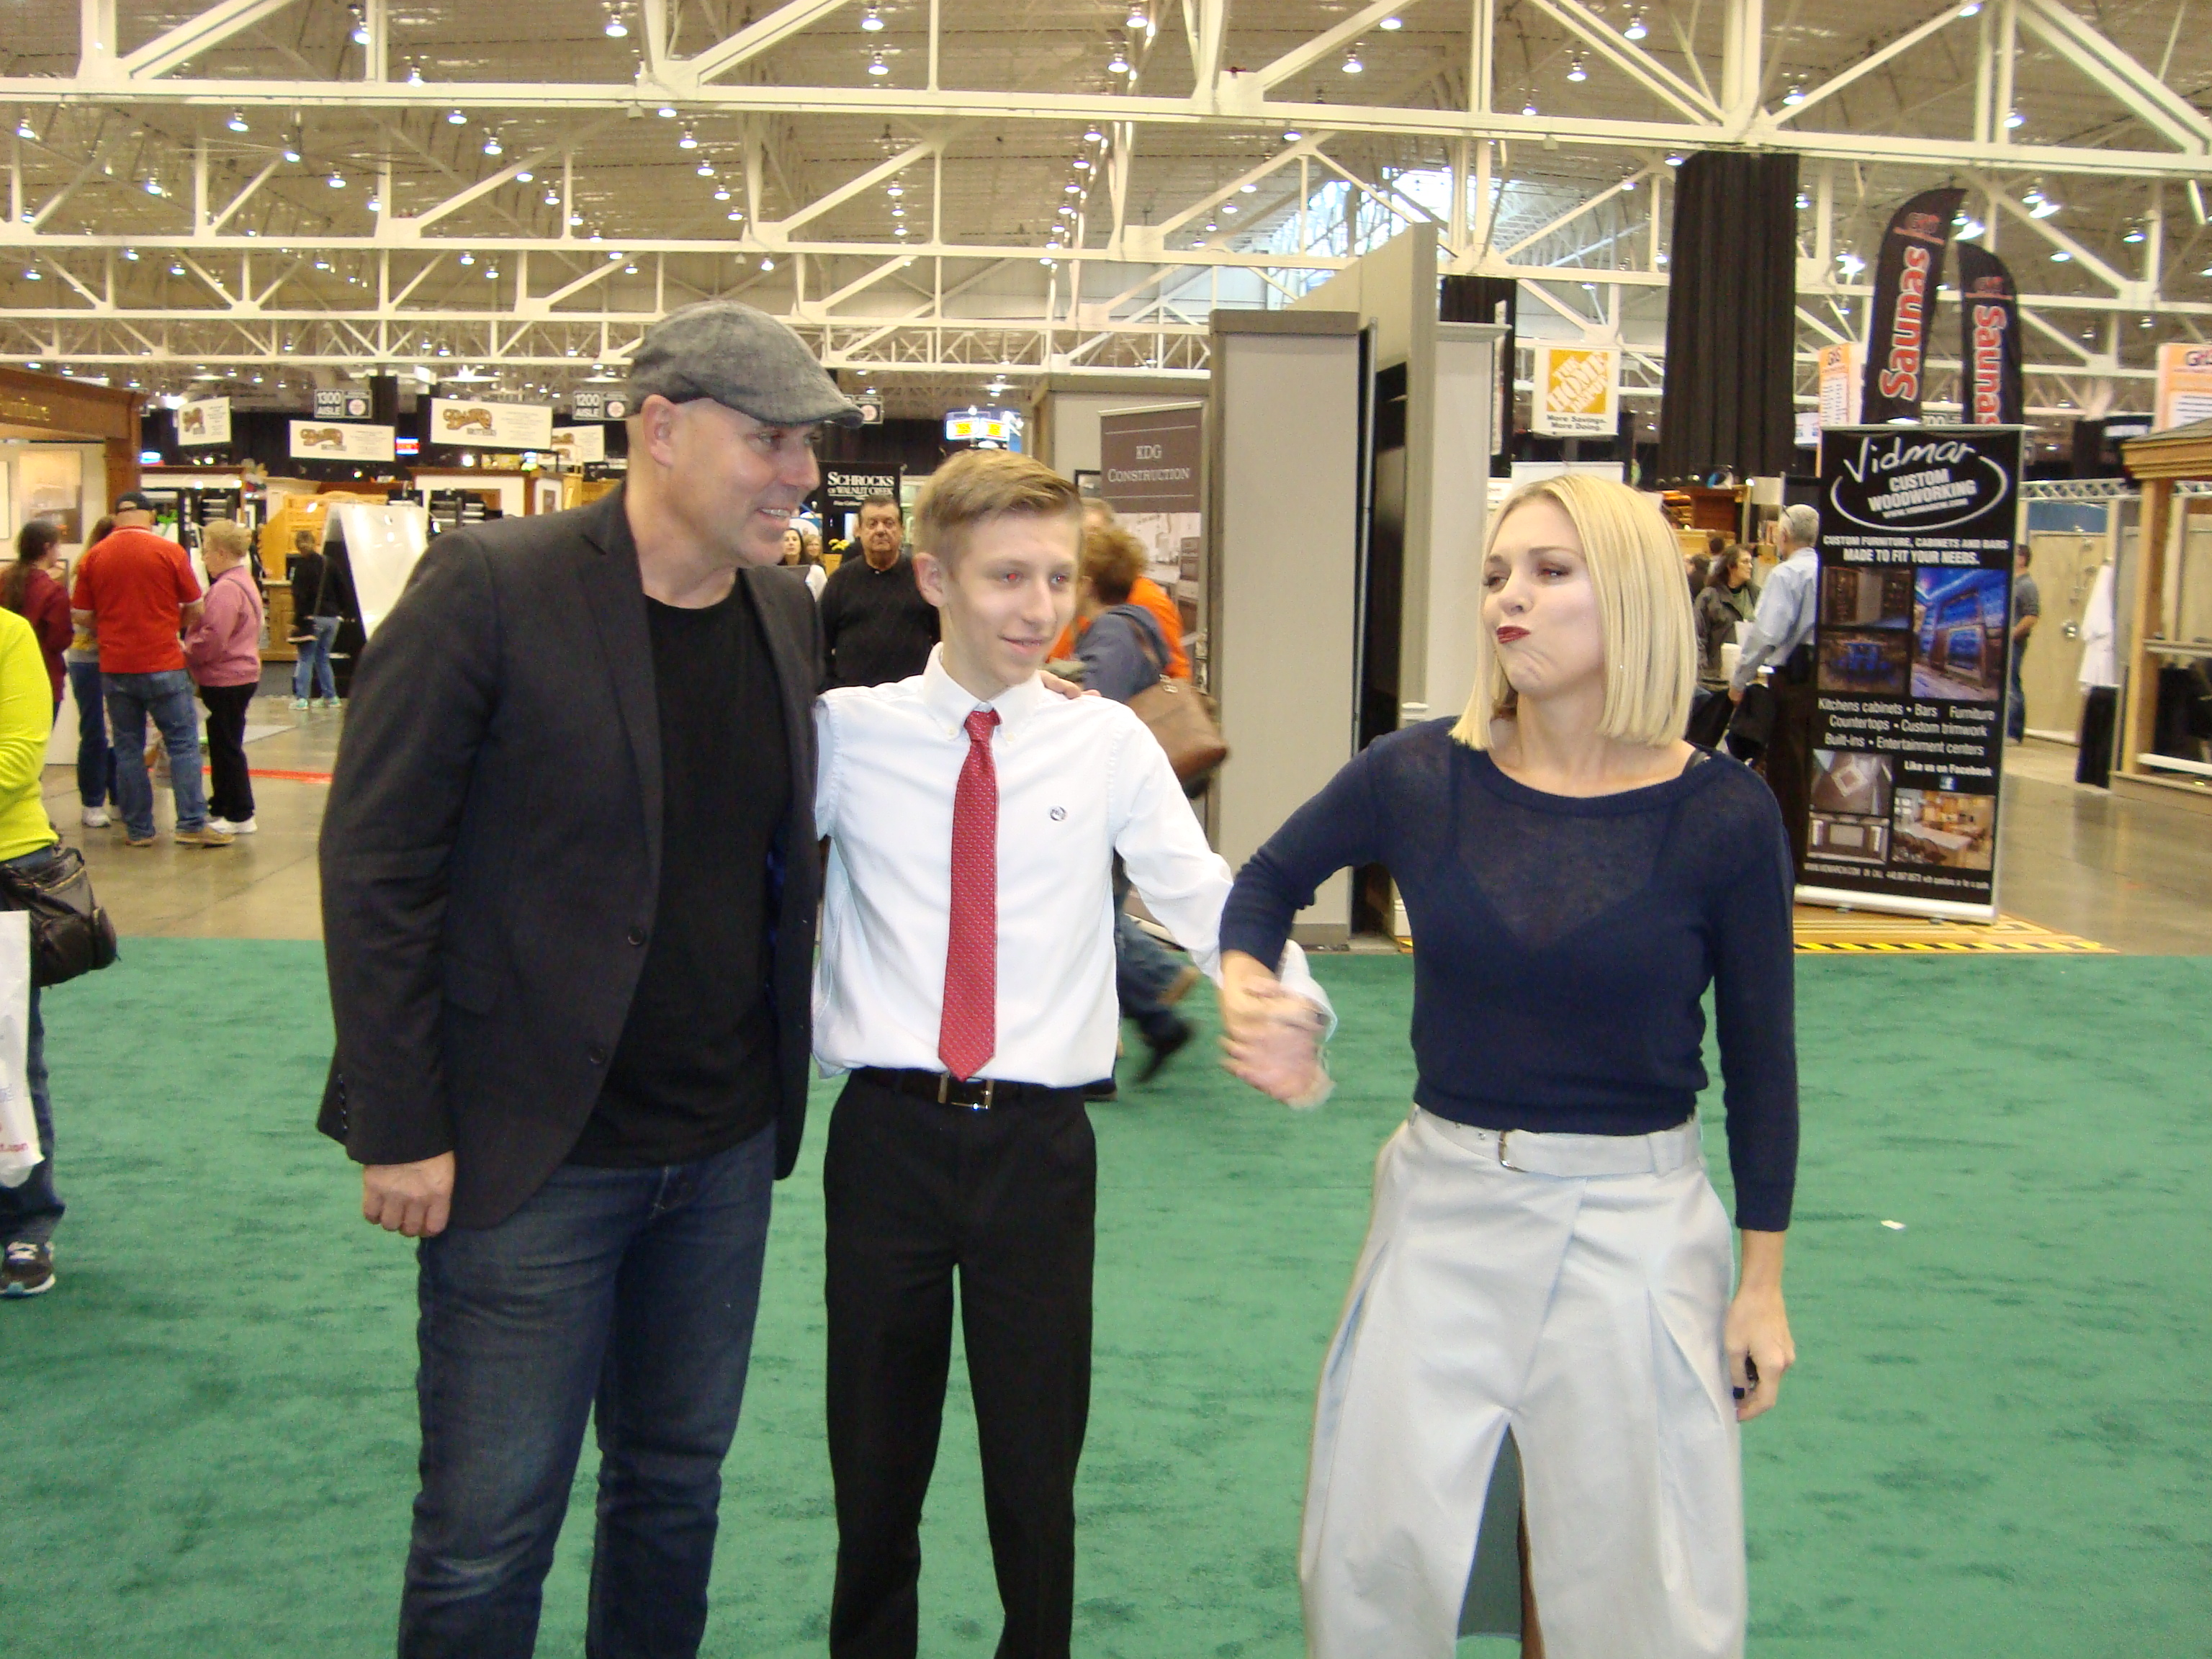 Dave and Kortney Wilson of the HGTV show Masters of Flip shake hands with Connor Reis at the IX Center.